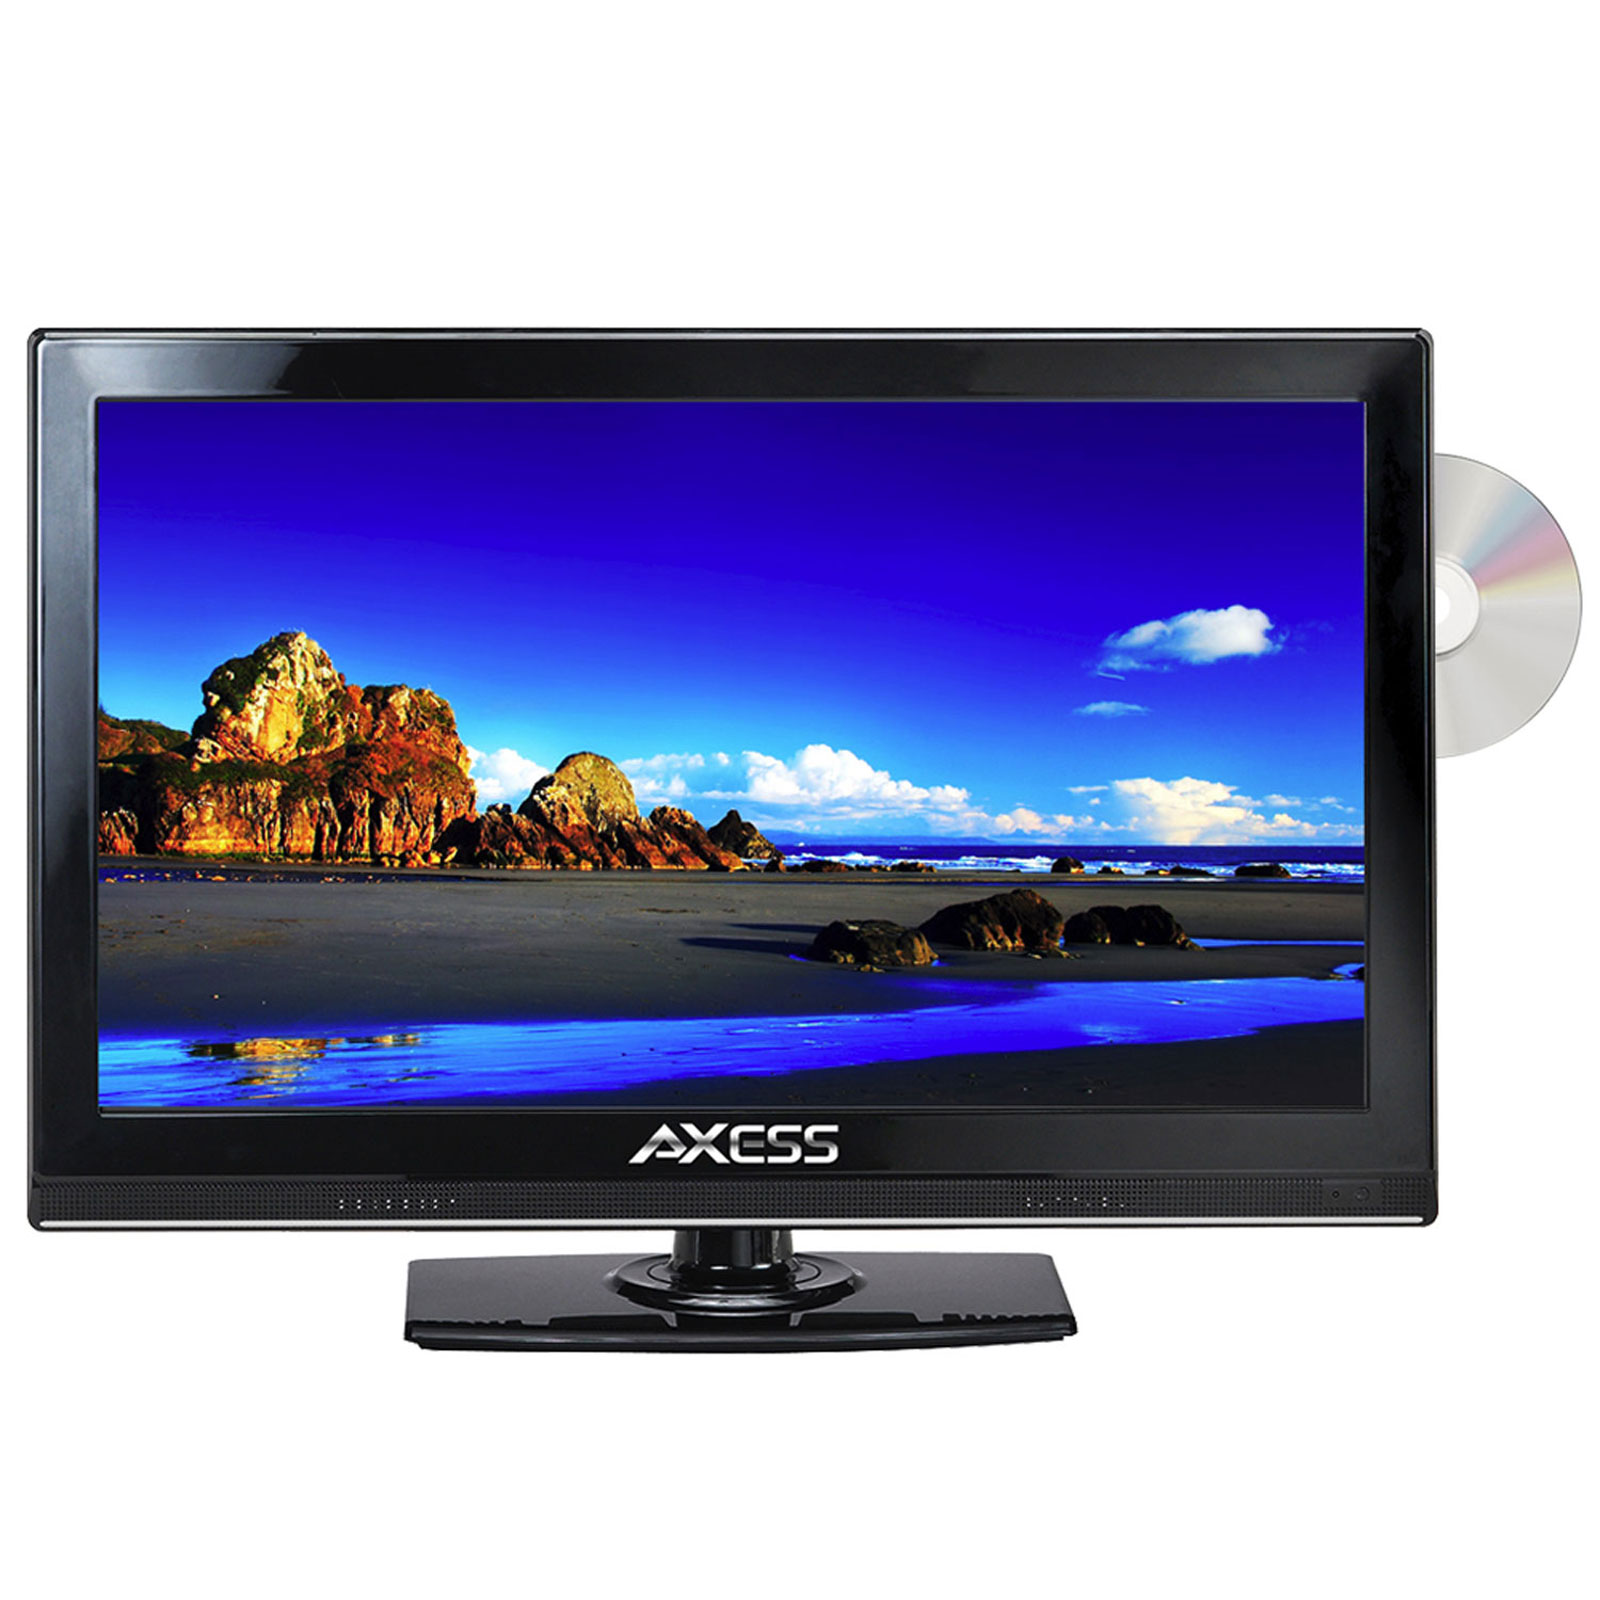 "Axess 15.4"" Class HD (720P) LED TV with Built-in DVD (TVD1801-15)"